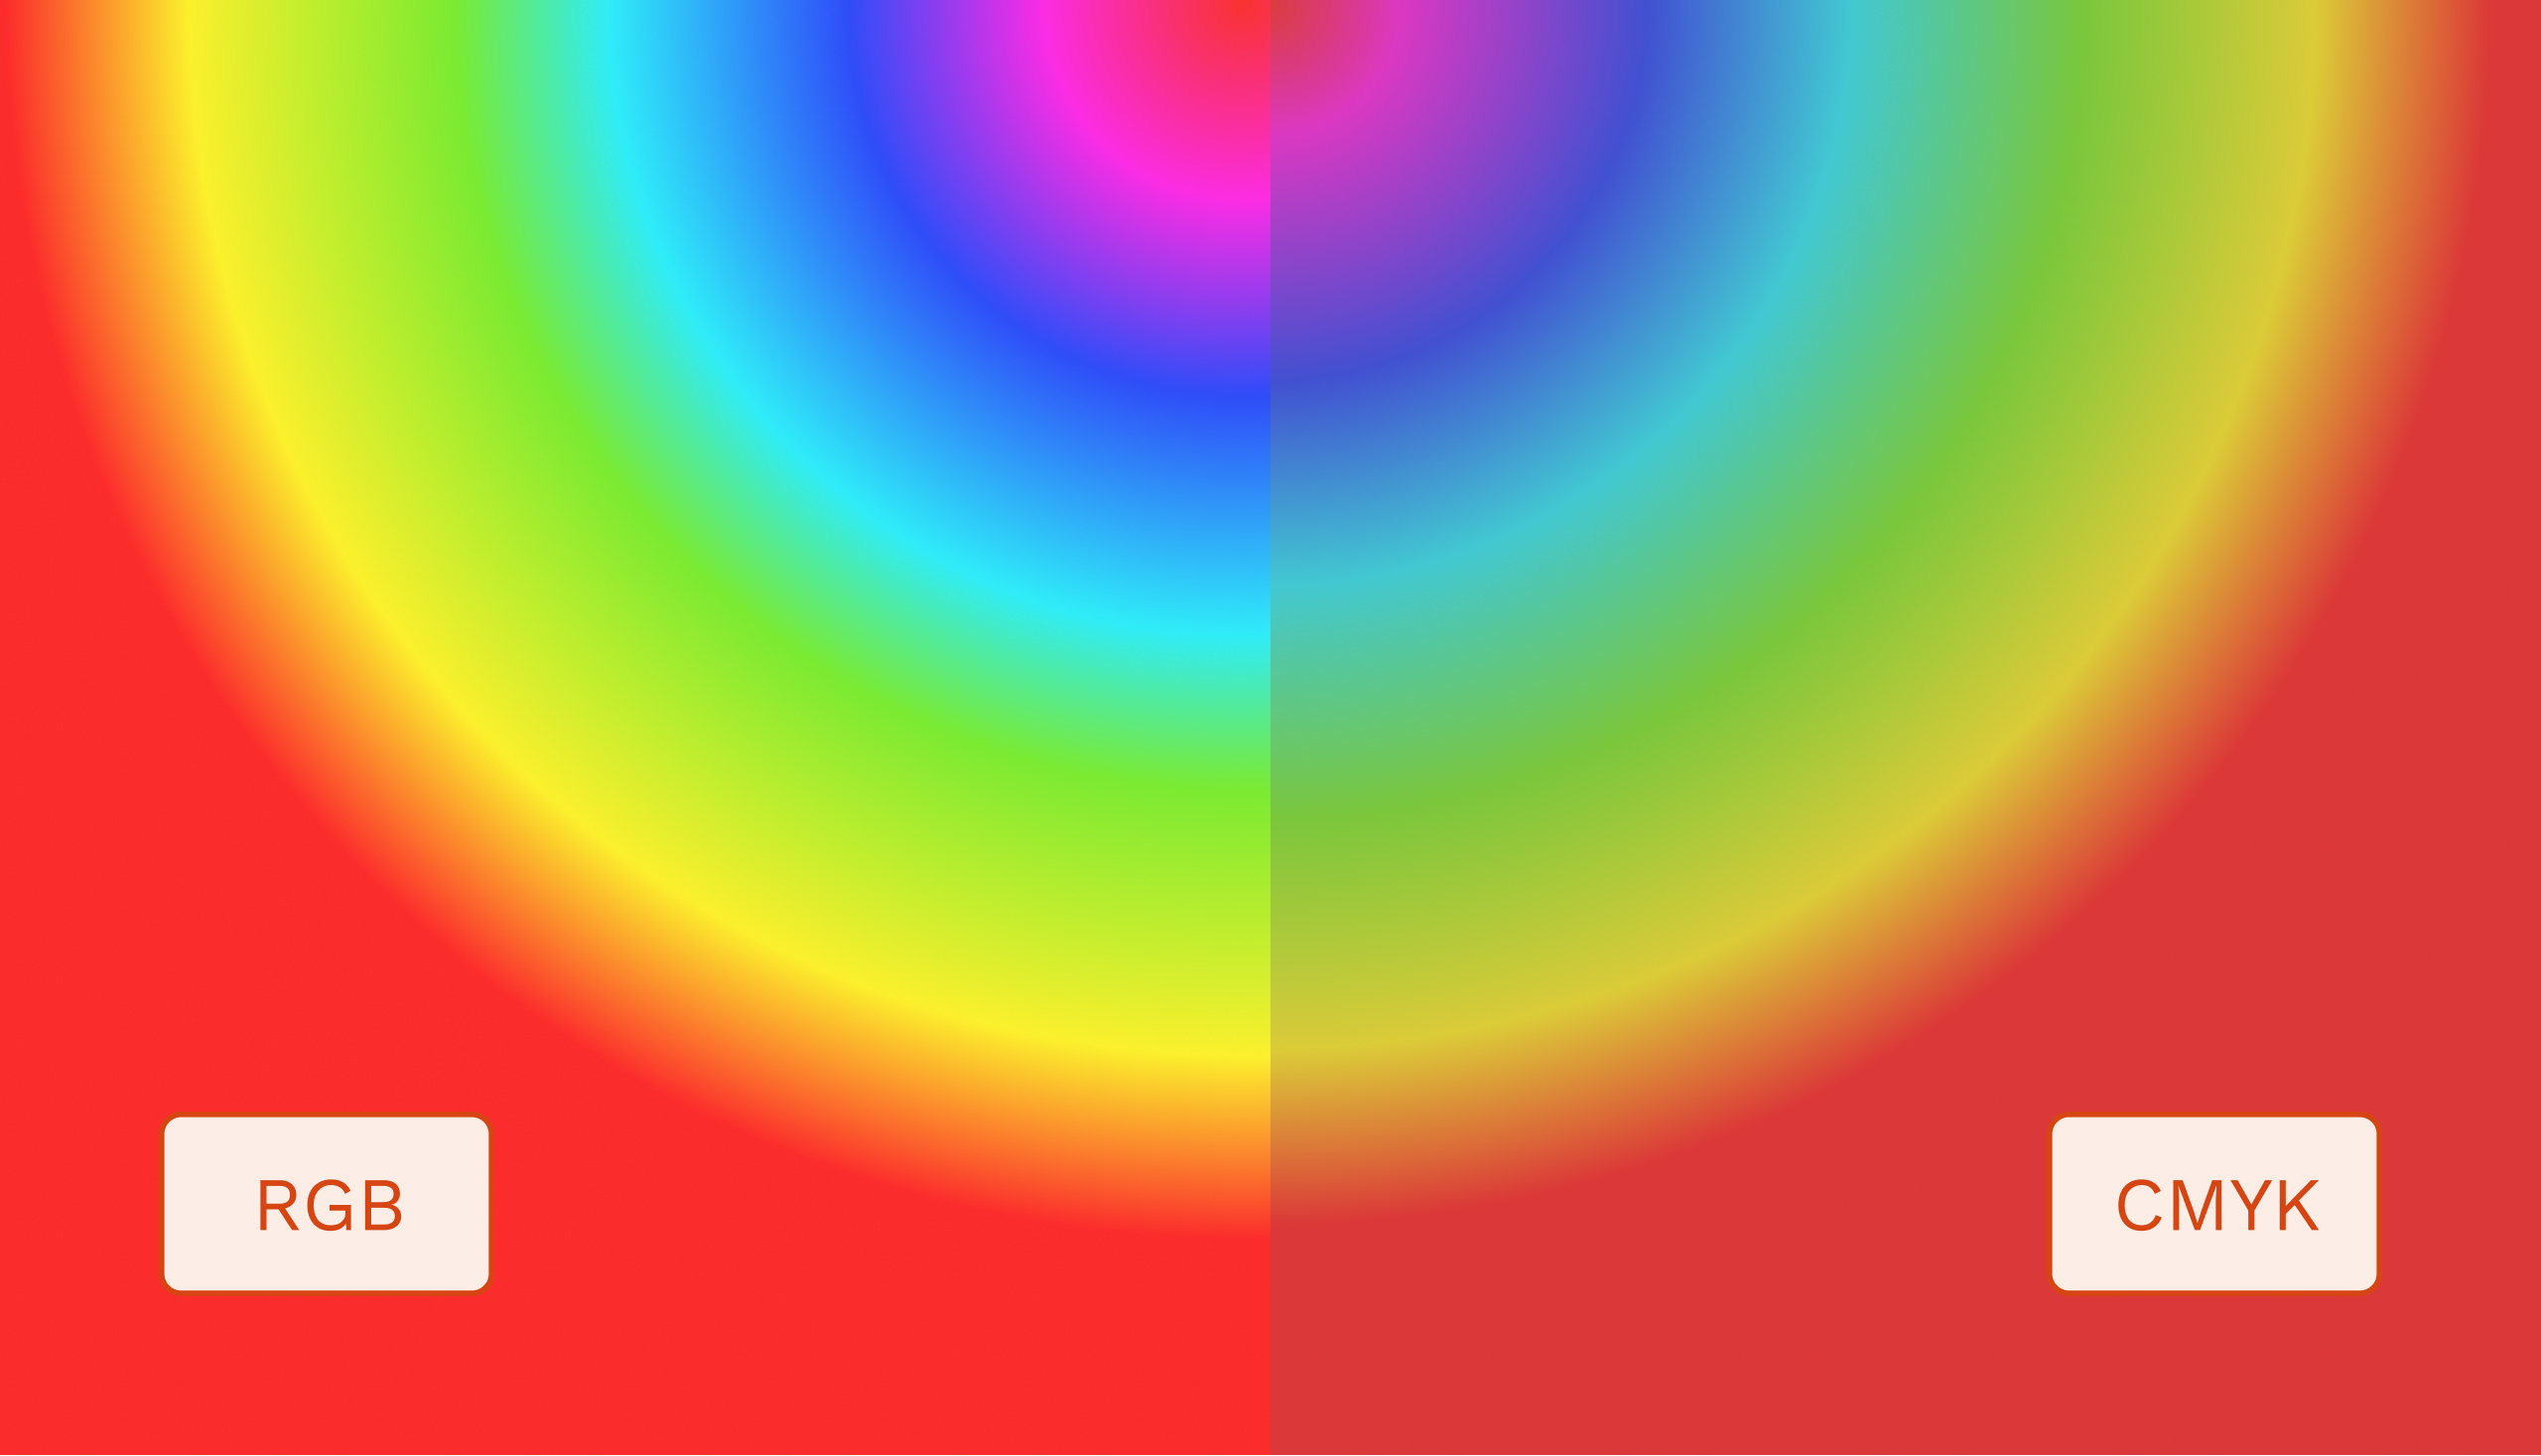 The difference between the RGB and CMYK color spaces